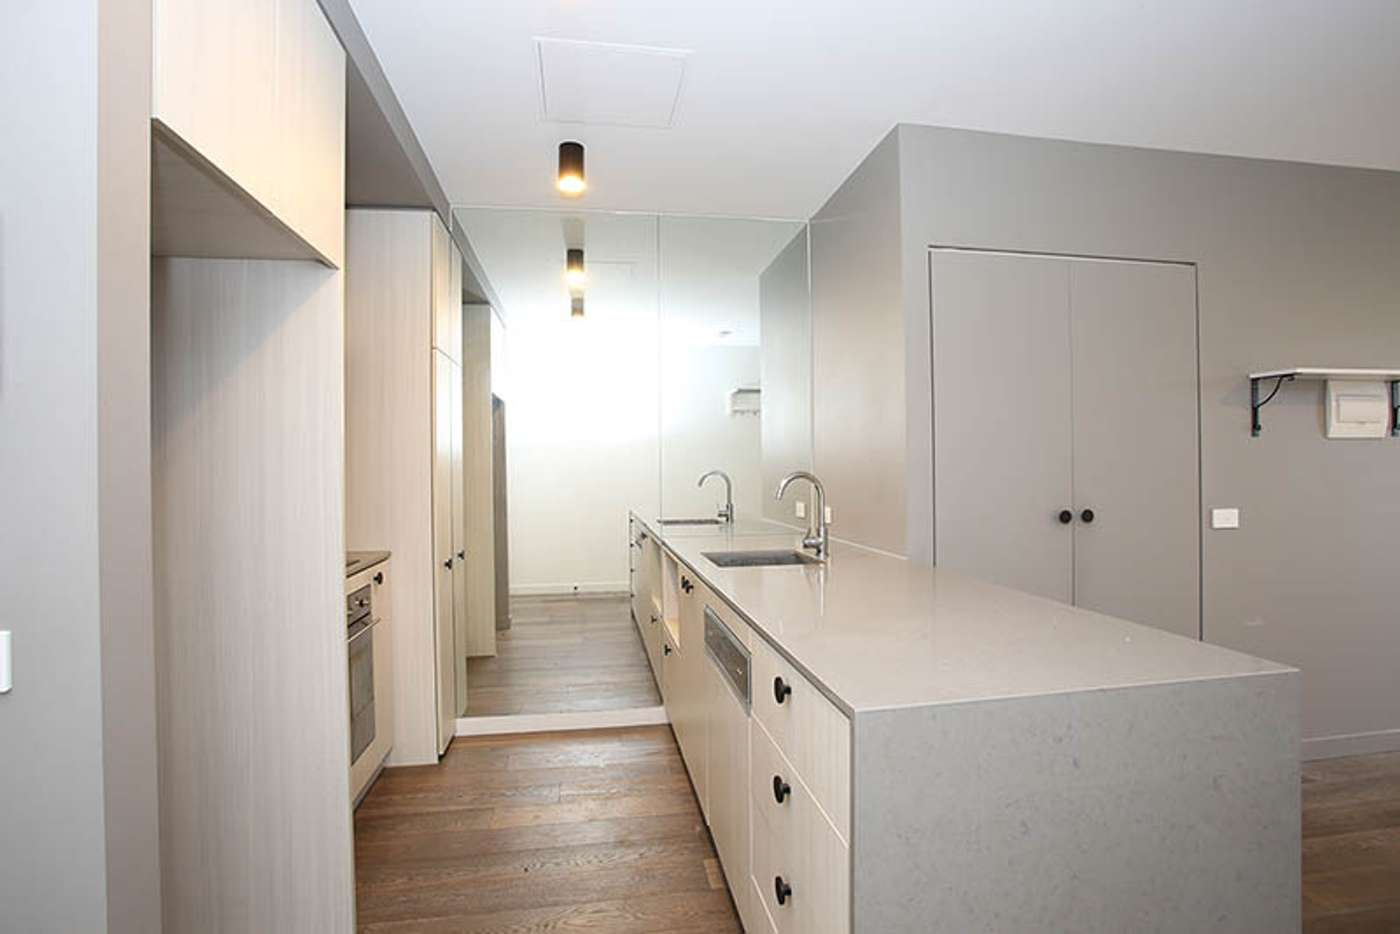 Main view of Homely townhouse listing, 2003/178 Edward Street, Brunswick East VIC 3057